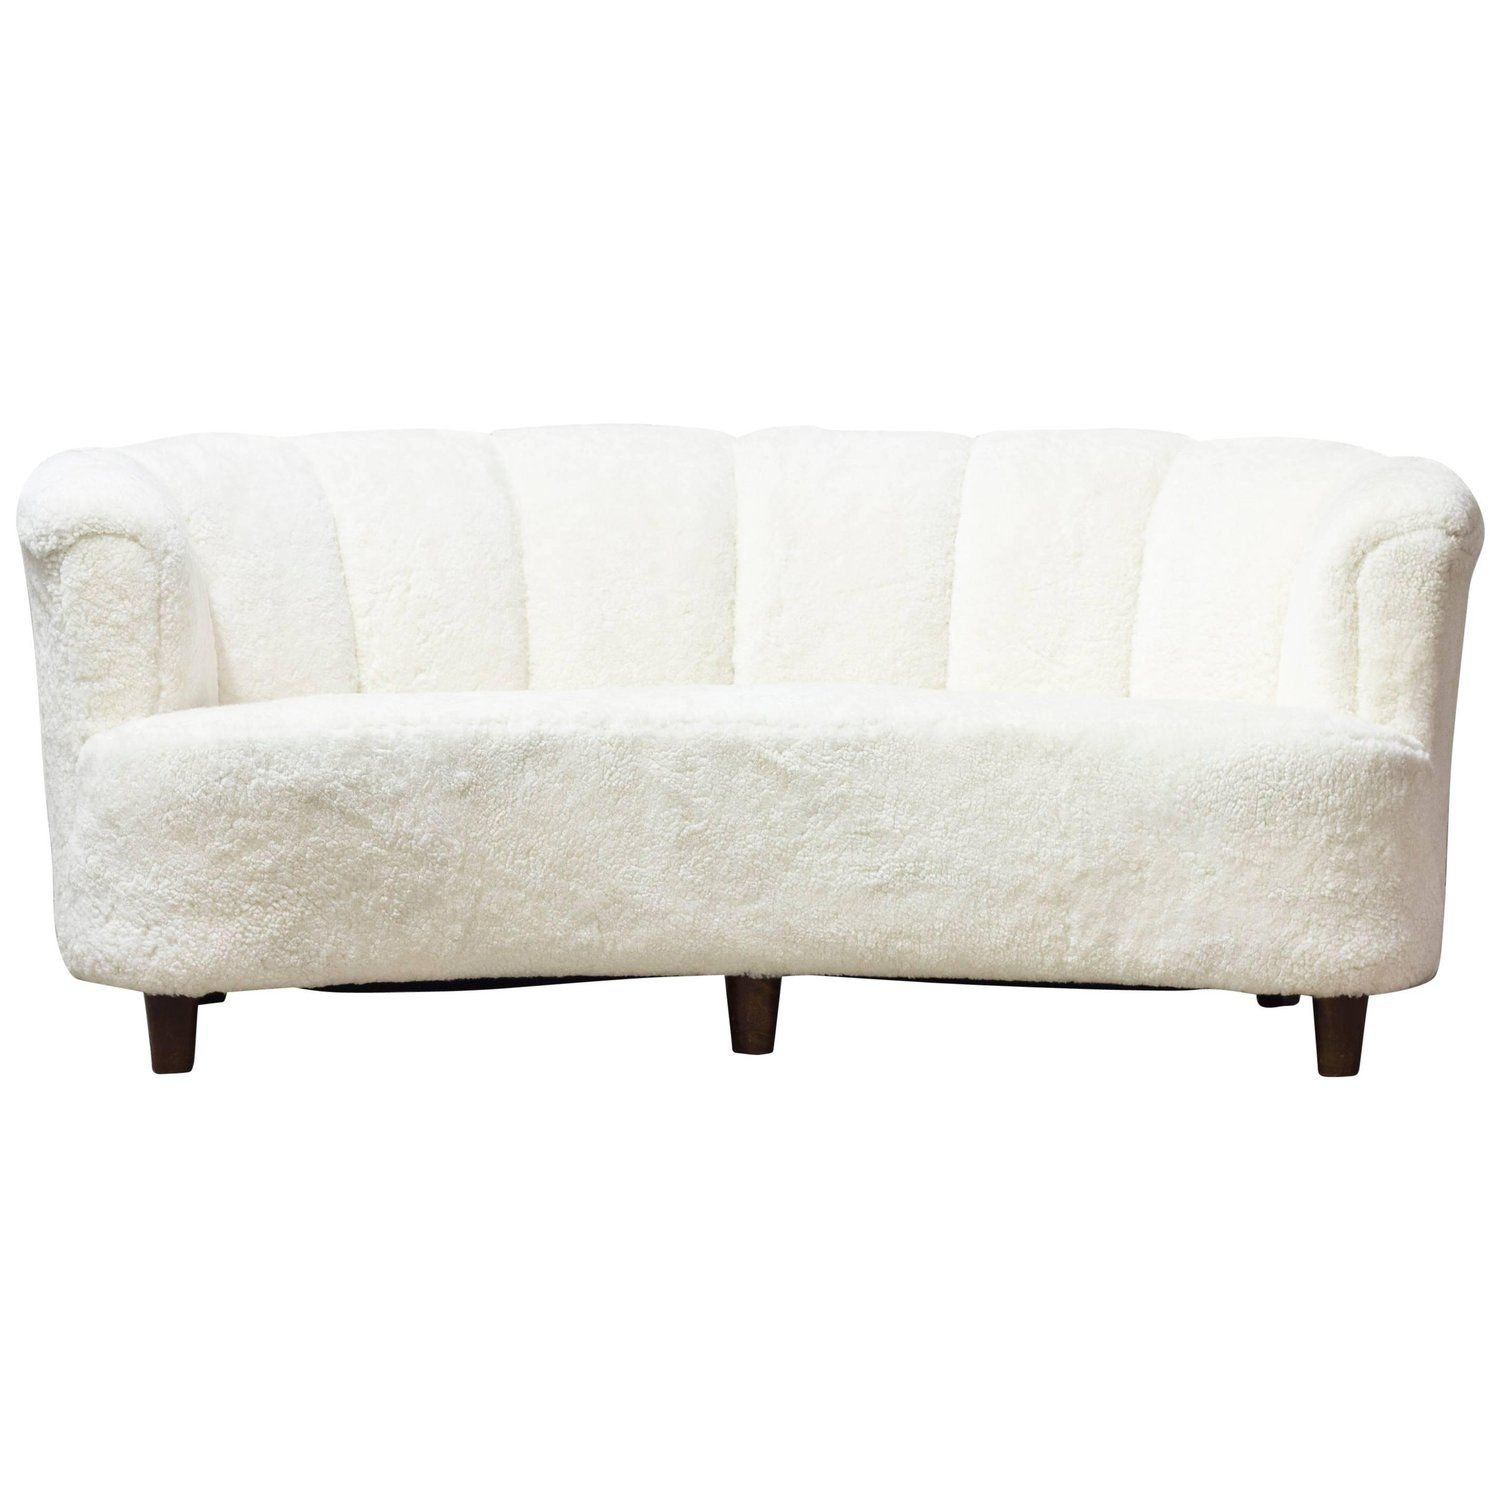 Fabulous 1930S Sheepskin Sofa Otto Schulz For Boet Vintage Sofa Squirreltailoven Fun Painted Chair Ideas Images Squirreltailovenorg